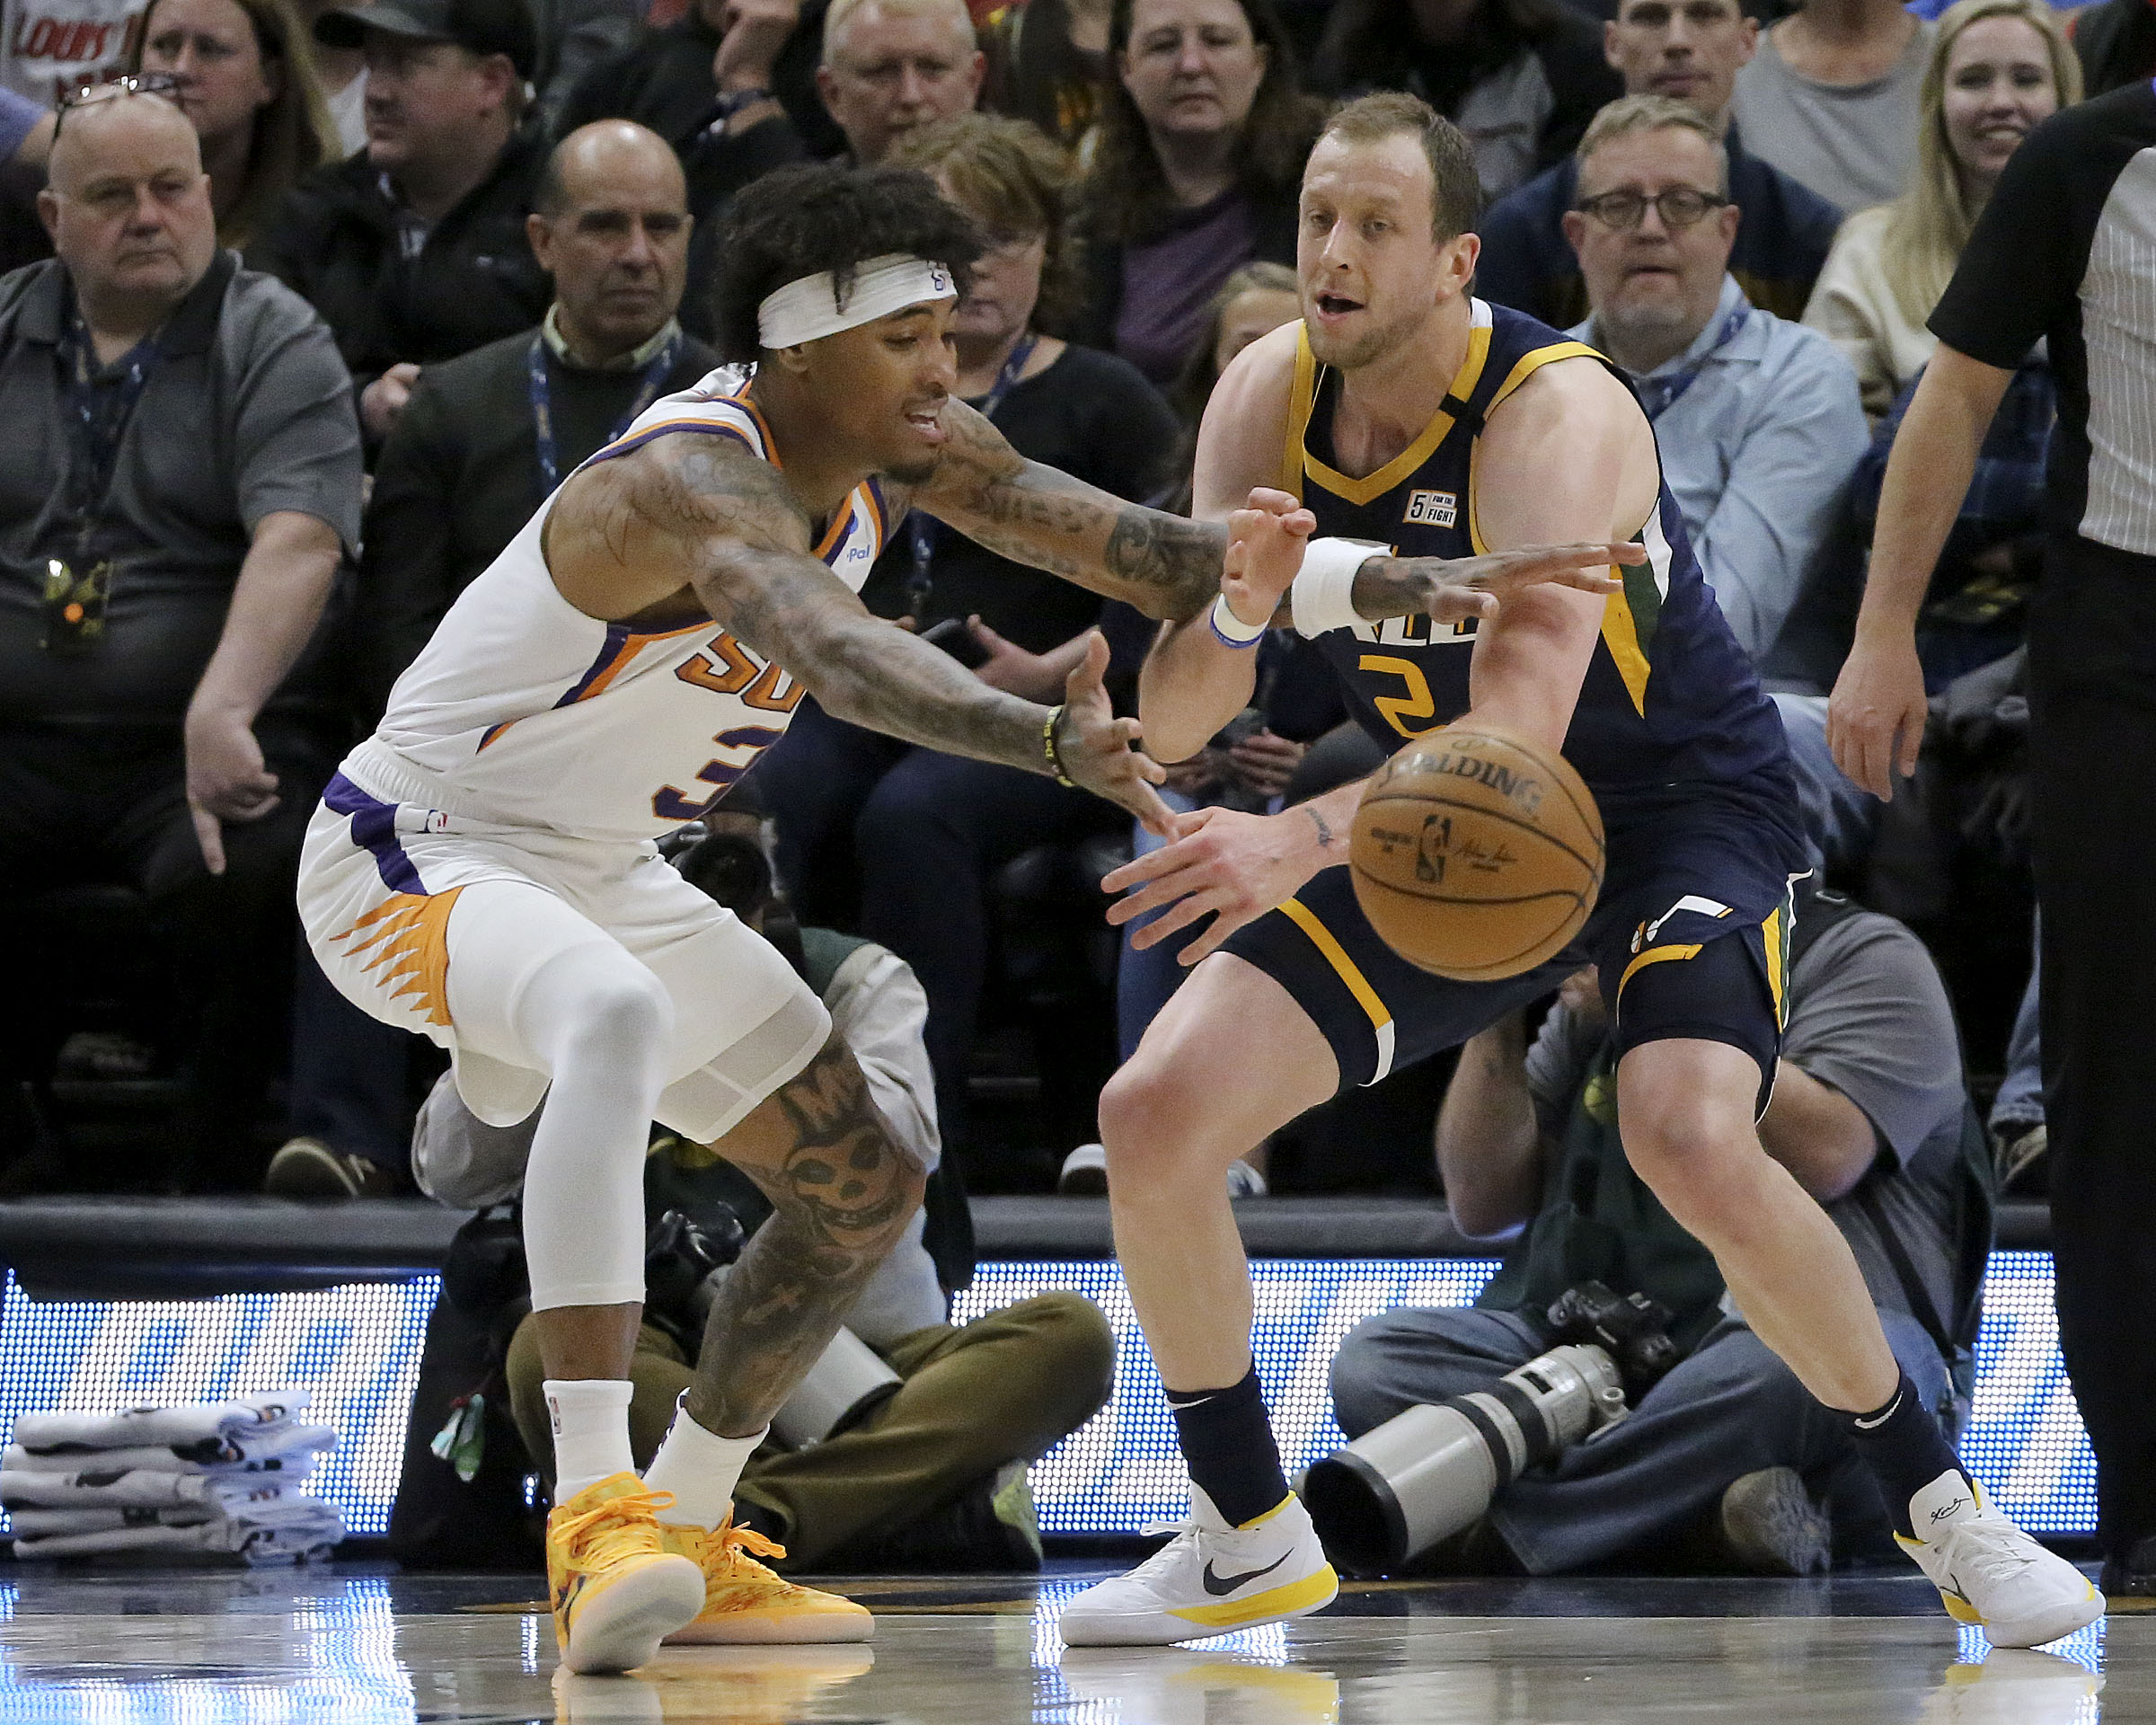 Phoenix Suns forward Kelly Oubre Jr. (3) and Utah Jazz guard Joe Ingles (2) fight for the ball during an NBA game at the Vivint Smart Home Arena in Salt Lake City on Monday, Feb. 24, 2020.